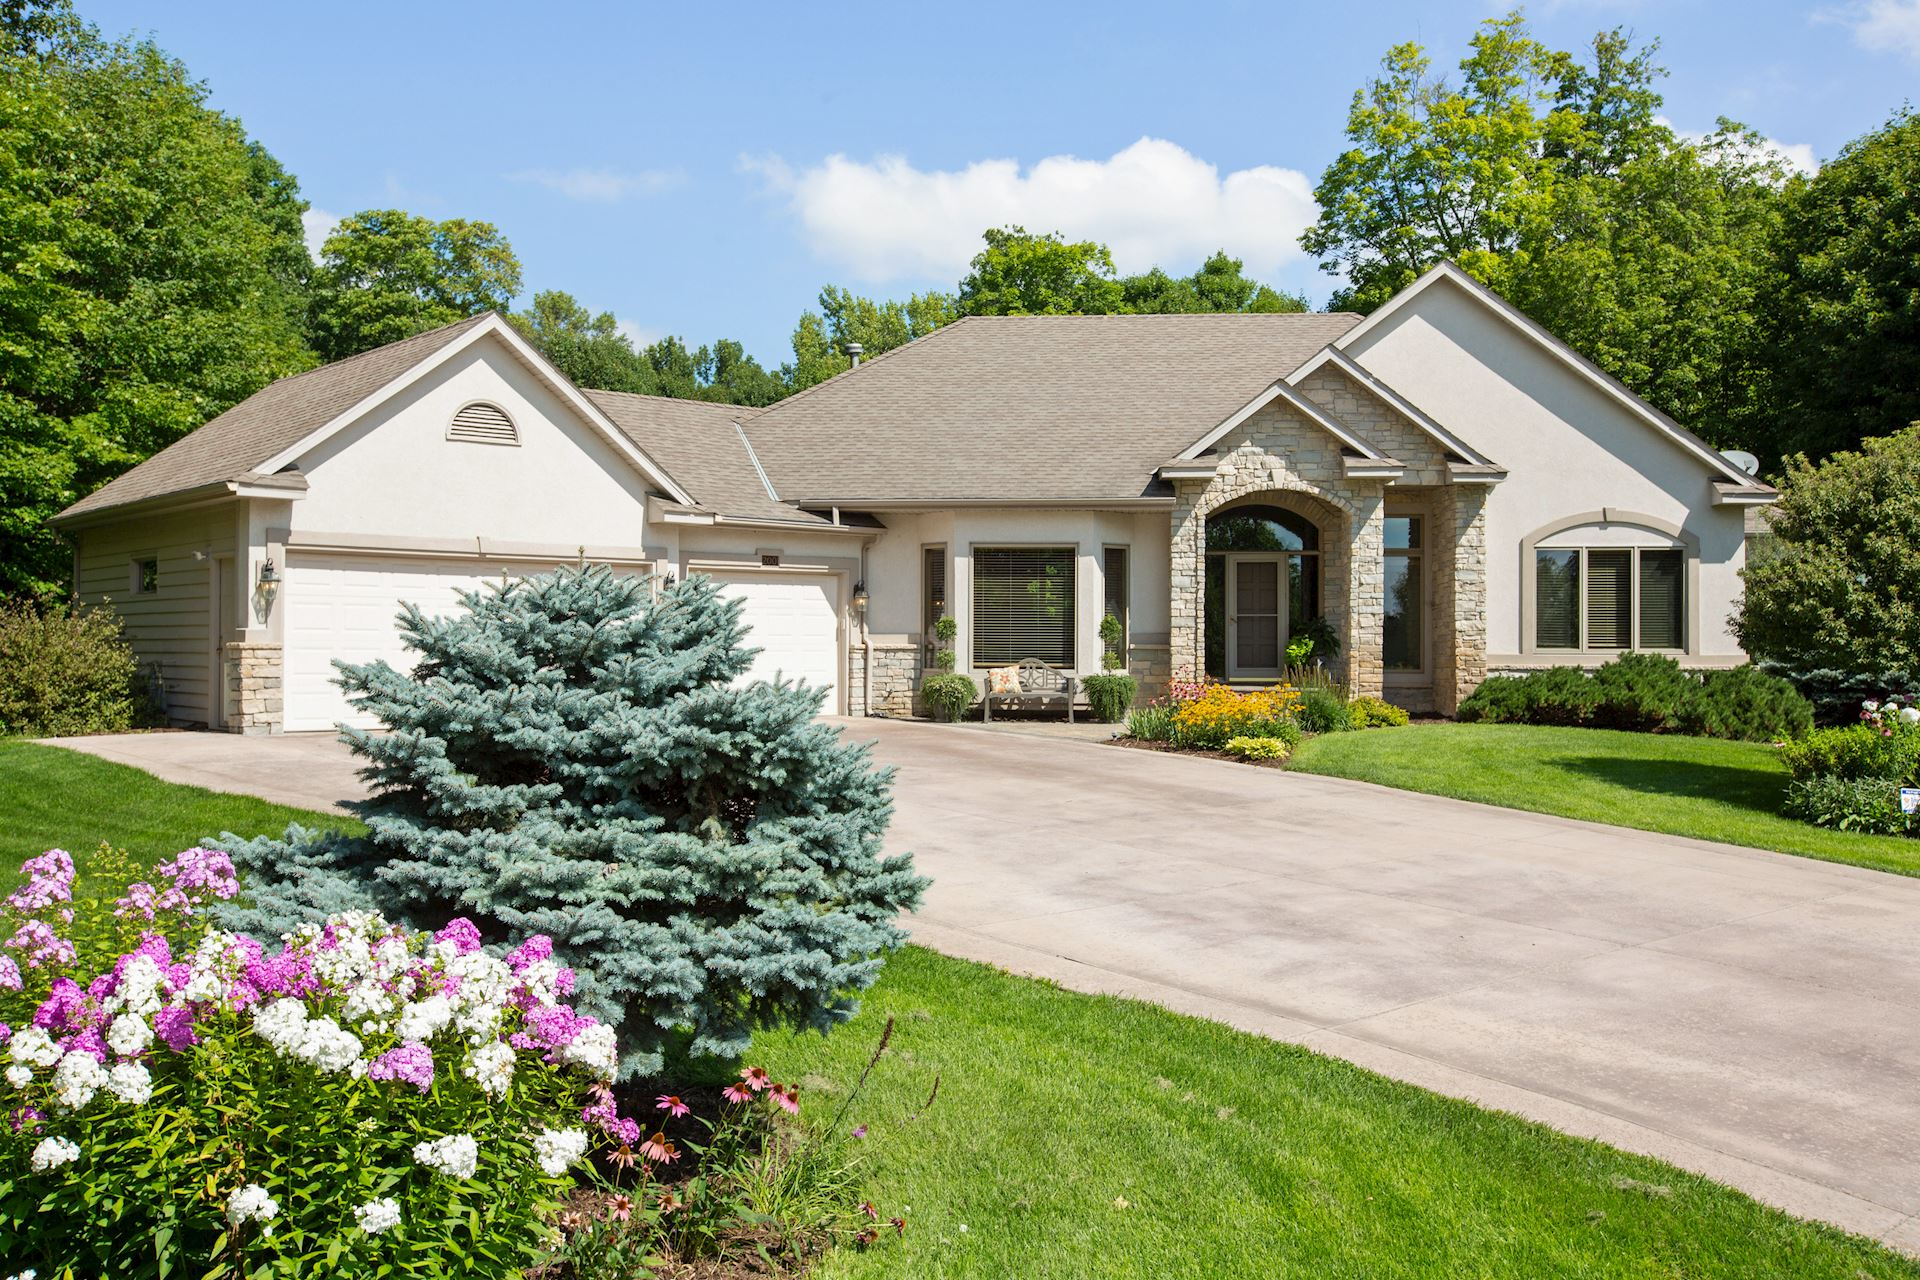 200 Truffula - Orono MN 55356 Pre-MLS - $850,000 - Just listed. Please contact us for details.